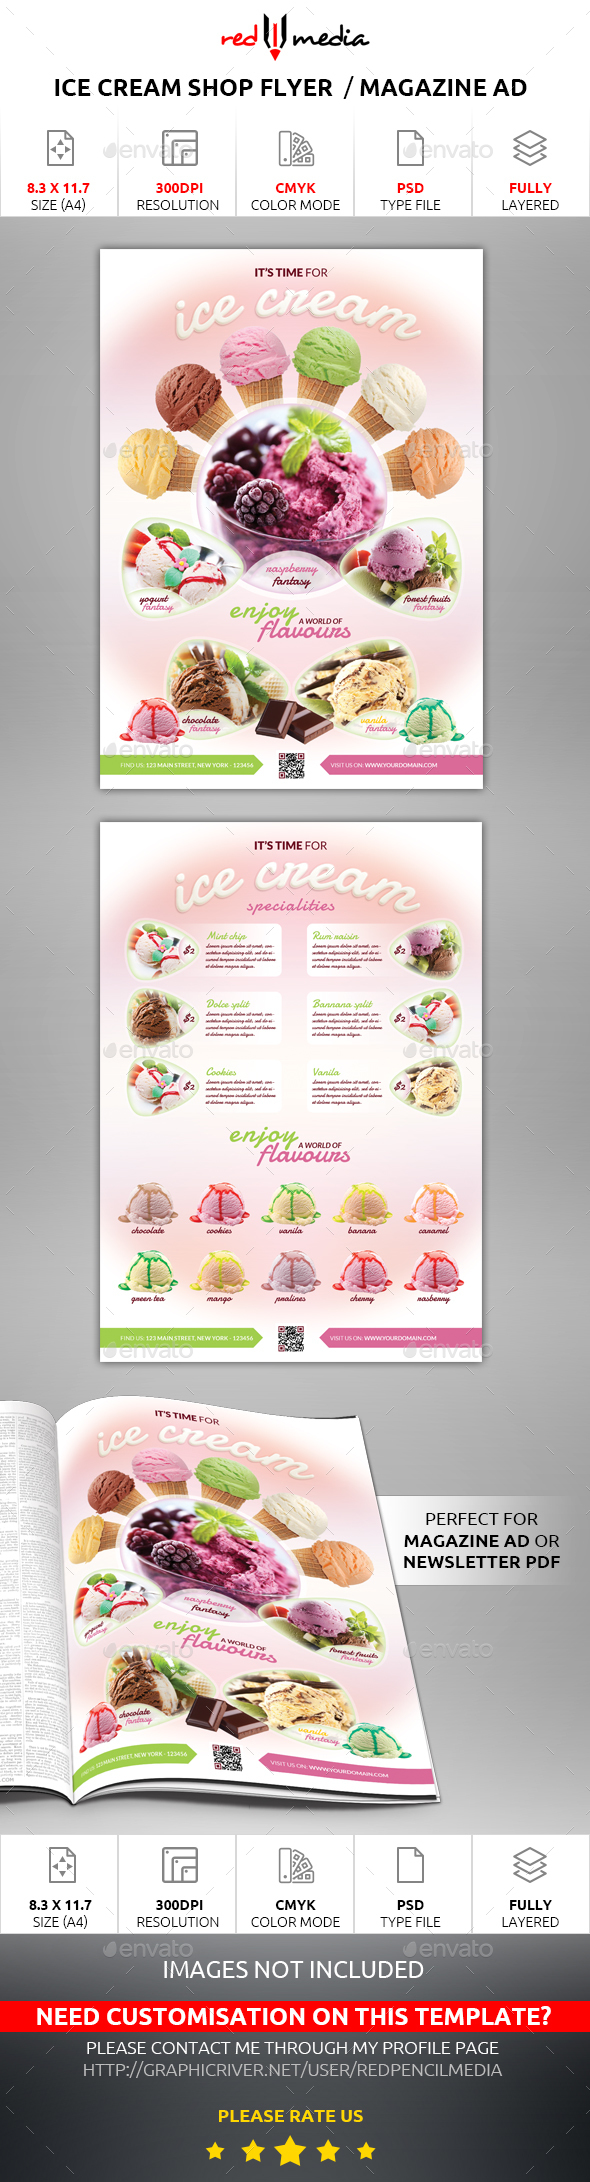 Ice Cream Shop Flyer / Magazine AD - Restaurant Flyers